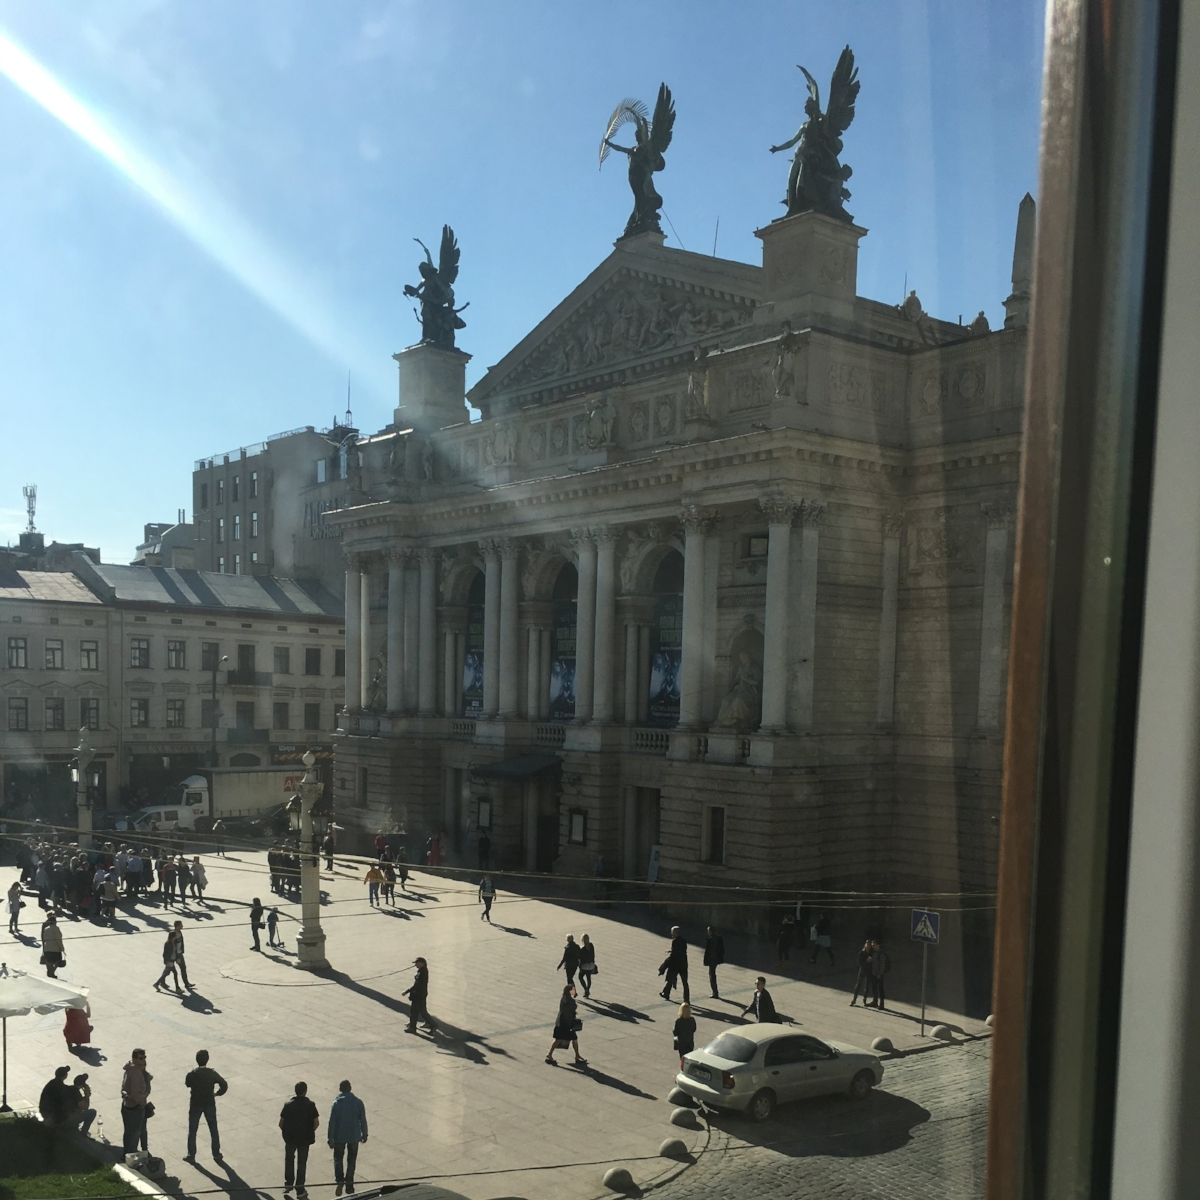 The view from our Airbnb in L'viv